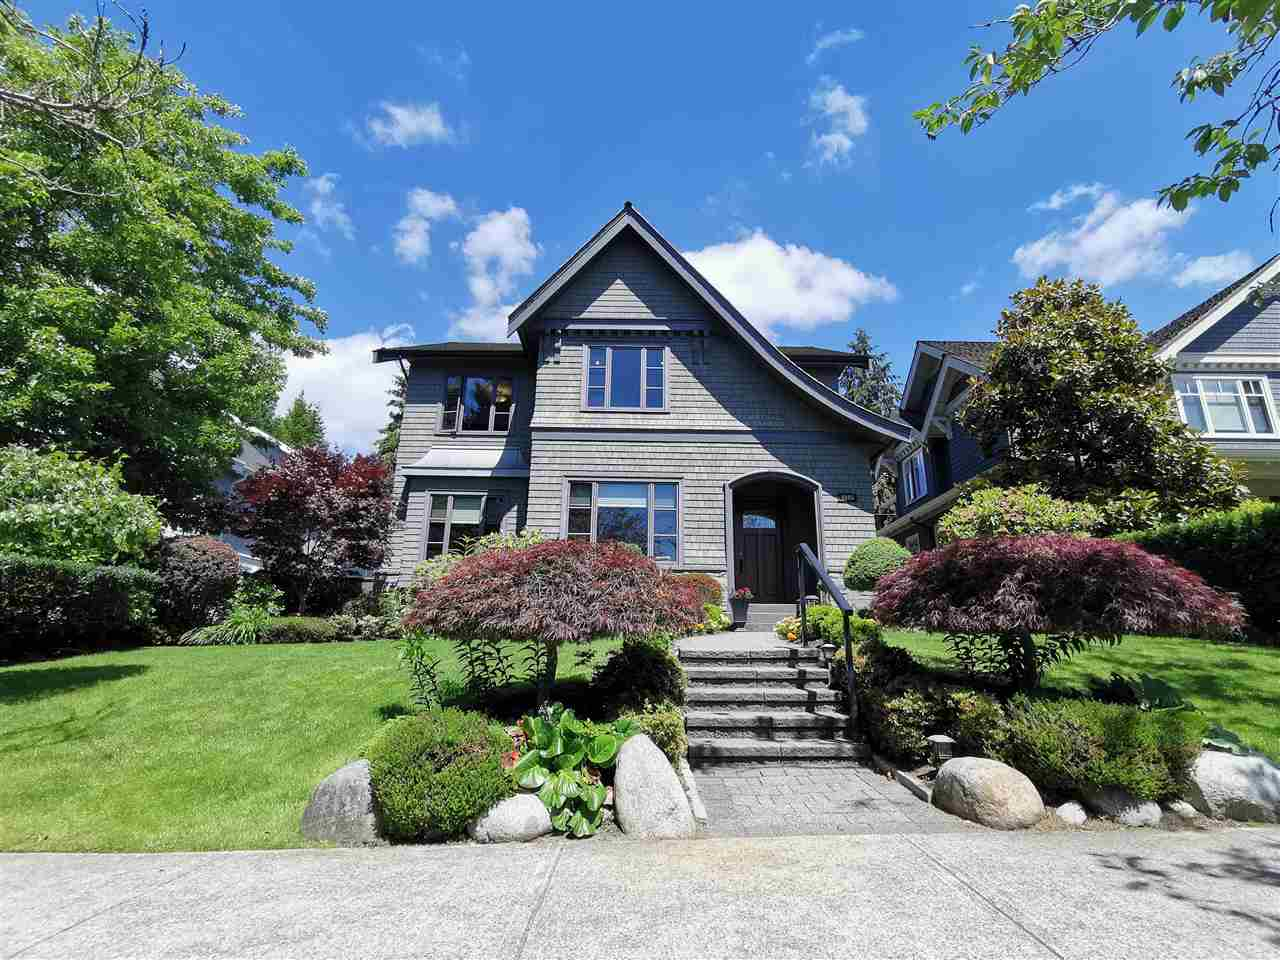 Welcome to this gorgeous home located in most prestigious neighbourhood in Vancouver's prime  west Dunbar . Large land of 6983 sq ft (52' x 134.27') with 4892 sq ft stylish family home, designed by Rafaela and built by WST. Total 5 bedrooms and 7 bathrooms. Main level entertainment-sized living, dining & family room plus a gourmet kitchen and wok kitchen equipped w/ high-end appliances. 4 large ensuite bedrooms upstairs. Lower level with recreation area, home theatre, wine cellar, cigar room and one ensuite bedroom. Built-in smart home system,  security system, A/C, HRV and Radiant heating. Beautifully landscaped lot just steps away from Pacific Spirit Park, close to BC top schools: St.George's, Crofton, York House,  UBC. Must to See !